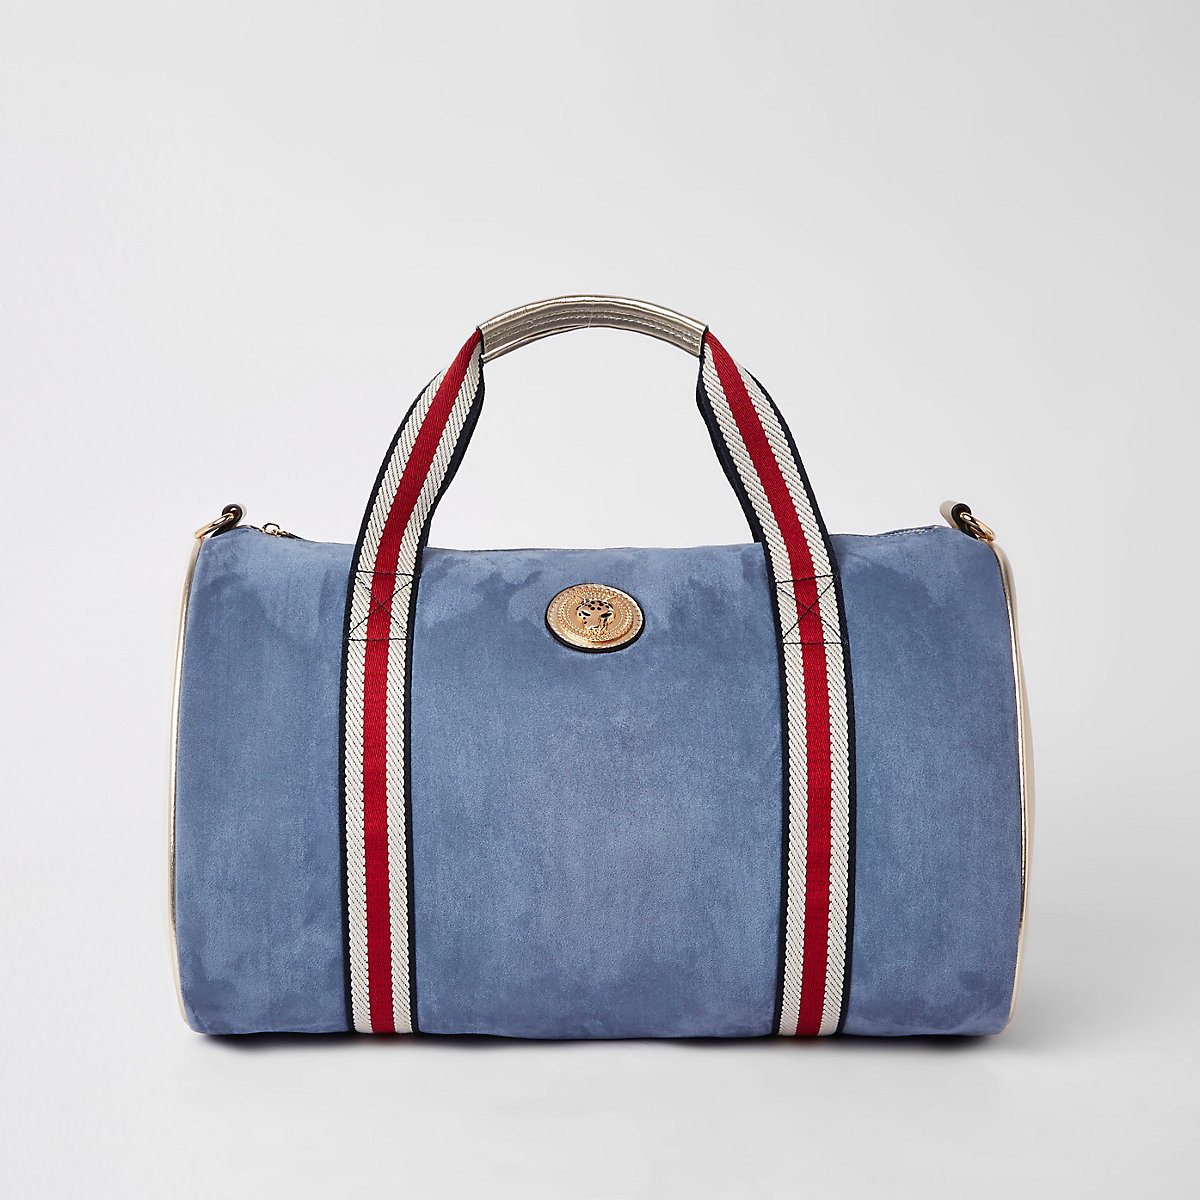 Blue jaguar duffle weekend bag